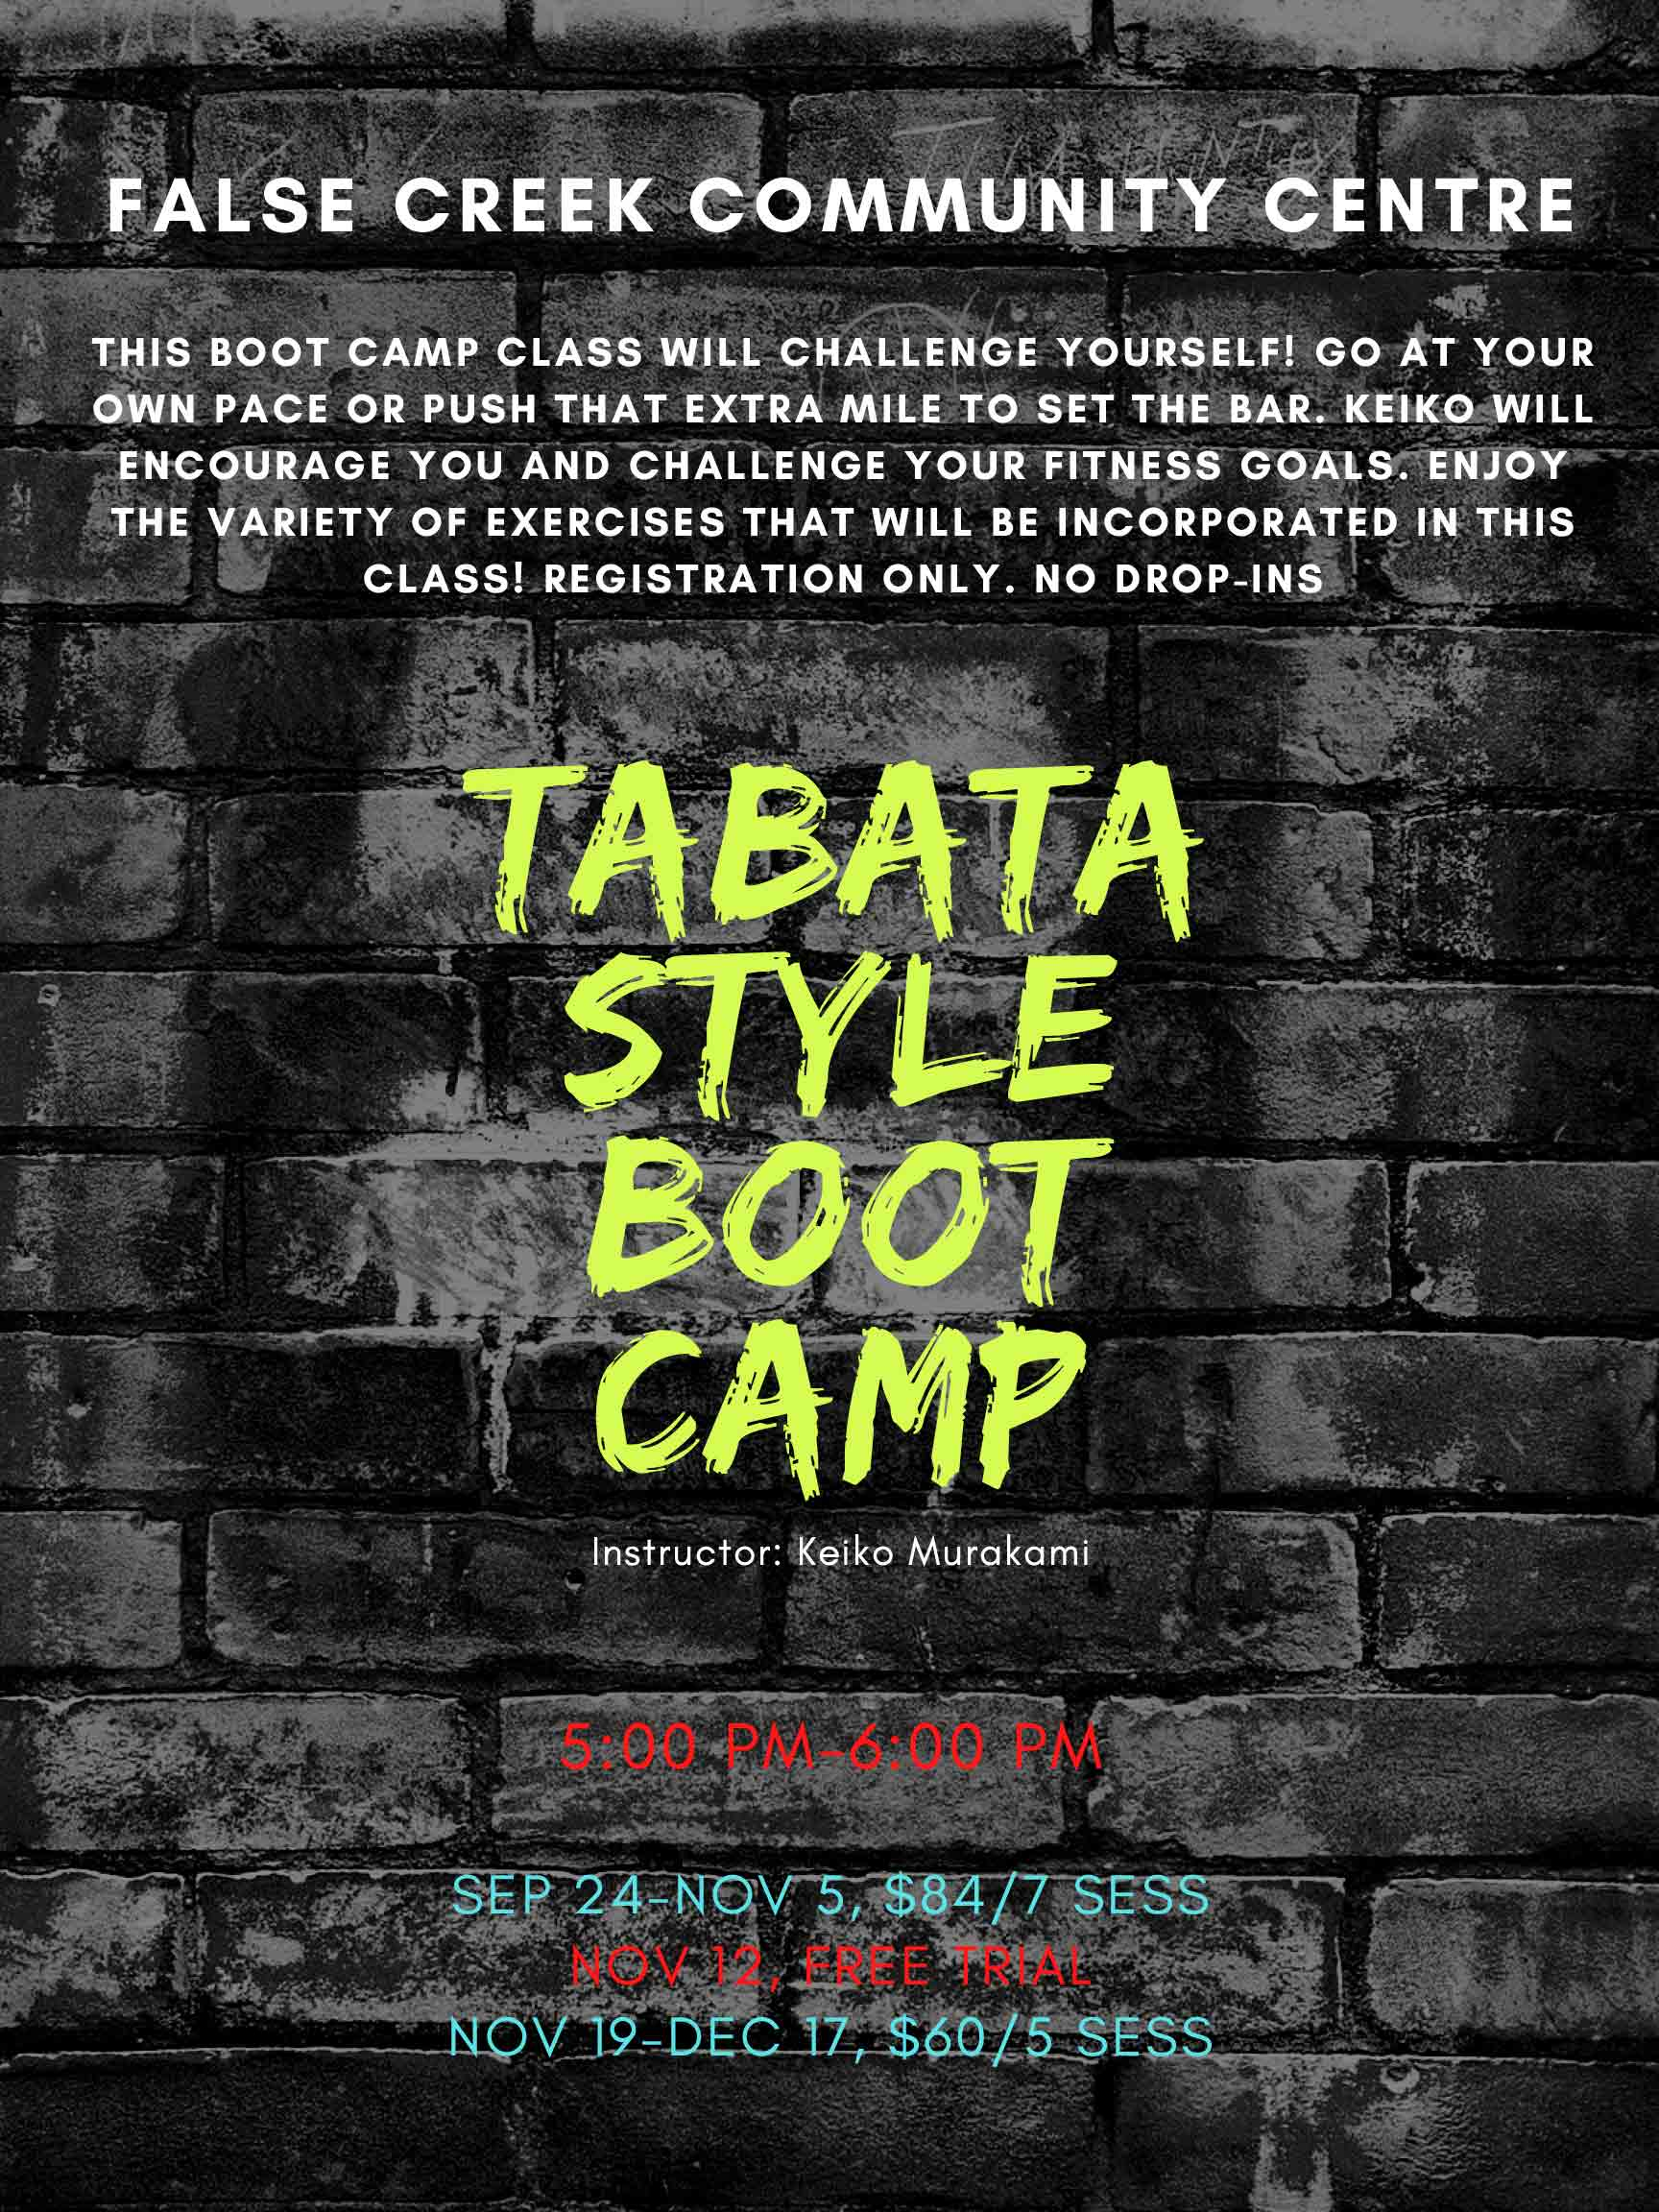 Tabata Style Boot Camp (19+ yrs) This Boot Camp class will challenge yourself! Go at your own pace or push that extra mile to set the bar. Keiko will encourage you and challenge your fitness goals. Enjoy the variety of exercises that will be incorporated in this class! Registration only. No drop-ins Instructor: Keiko Murakami F Sep 24-Nov 5 5:00 PM-6:00 PM 358191 $84/7 sess F Nov 12 5:00 PM-6:00 PM 378802 FREE TRIAL F Nov 19-Dec 17 5:00 PM-6:00 PM 358192 $60/5 sess